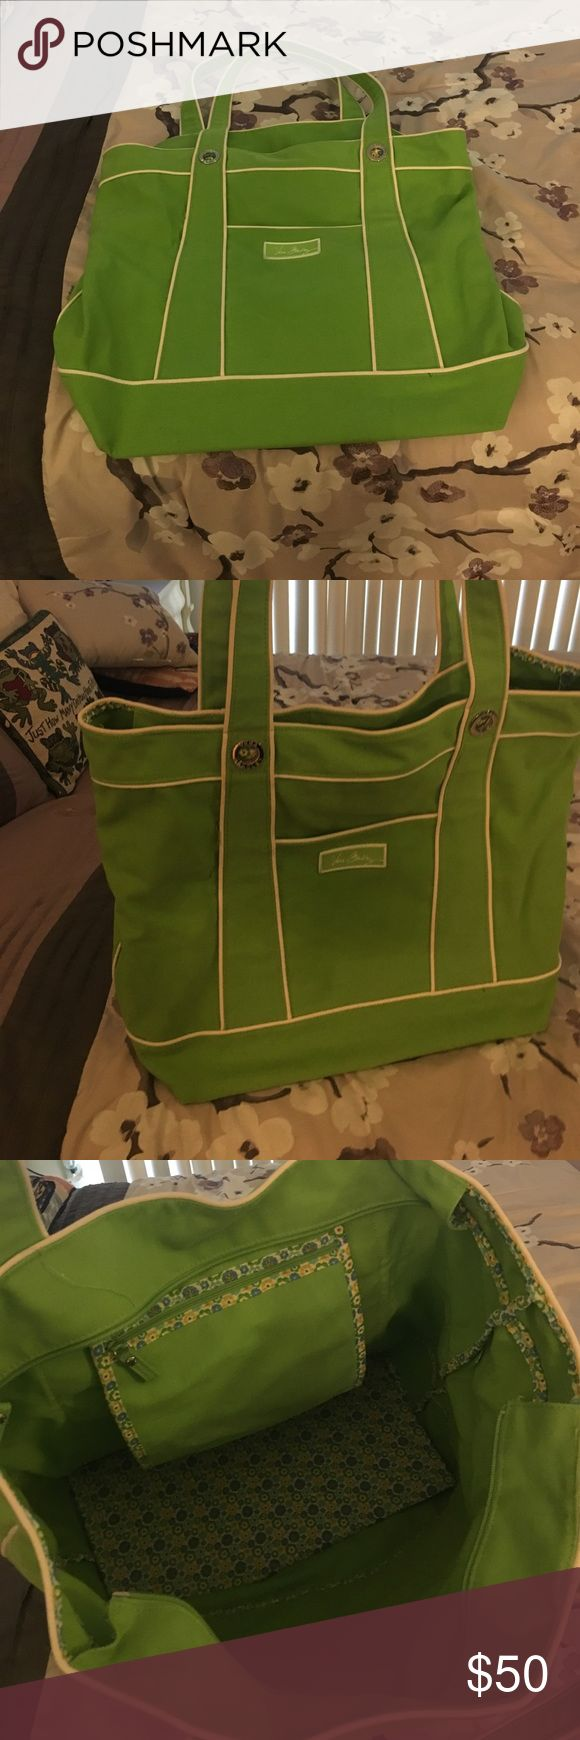 Vera Bradley Super Large Canvas Tote Impeccable condition. Large tote and made of canvas material. Non Smoking and pet free home. Make me an offer! Vera Bradley Bags Totes